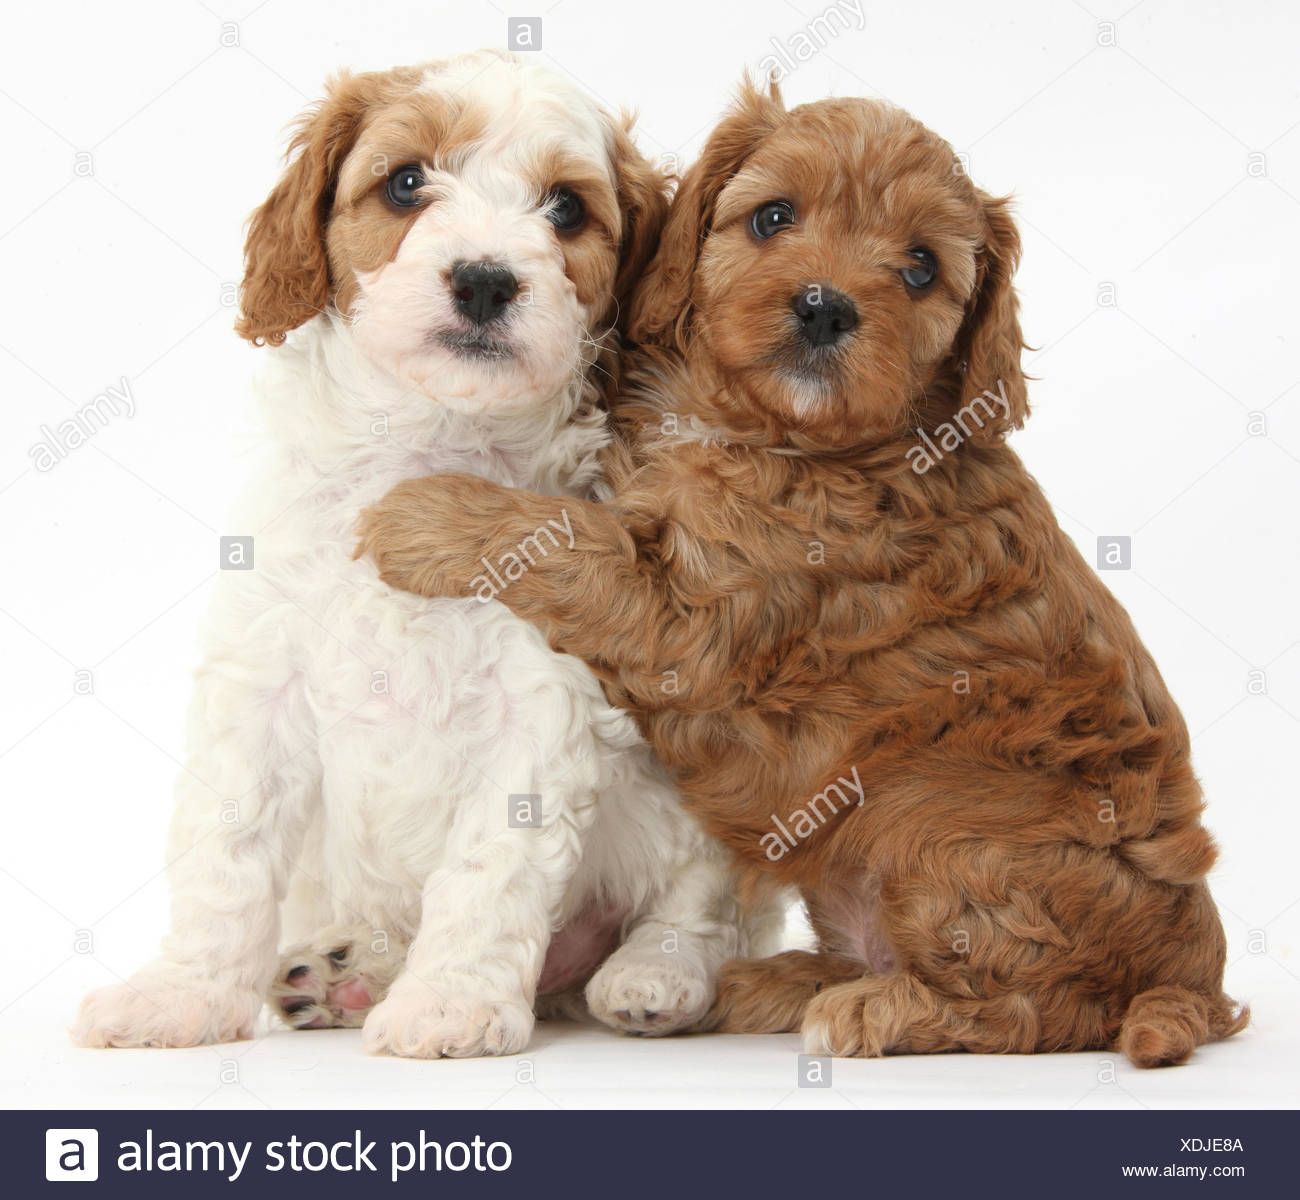 Page 2 White Cavapoo High Resolution Stock Photography And Images Alamy